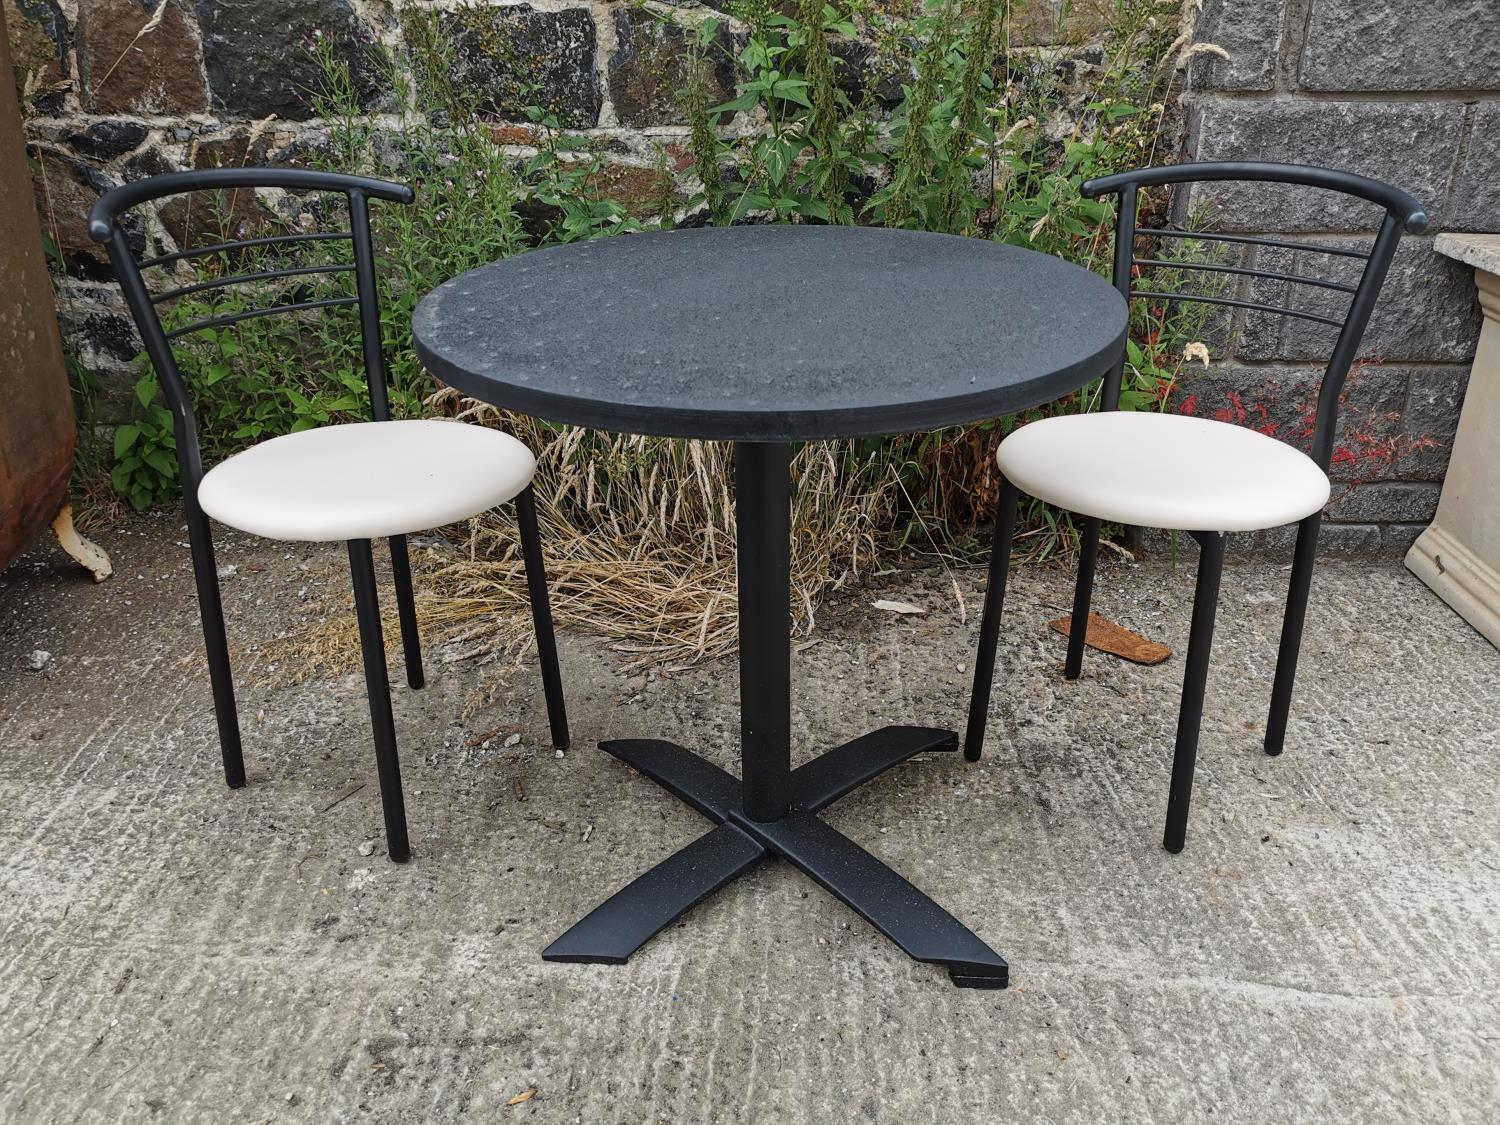 Round café table and two chairs.